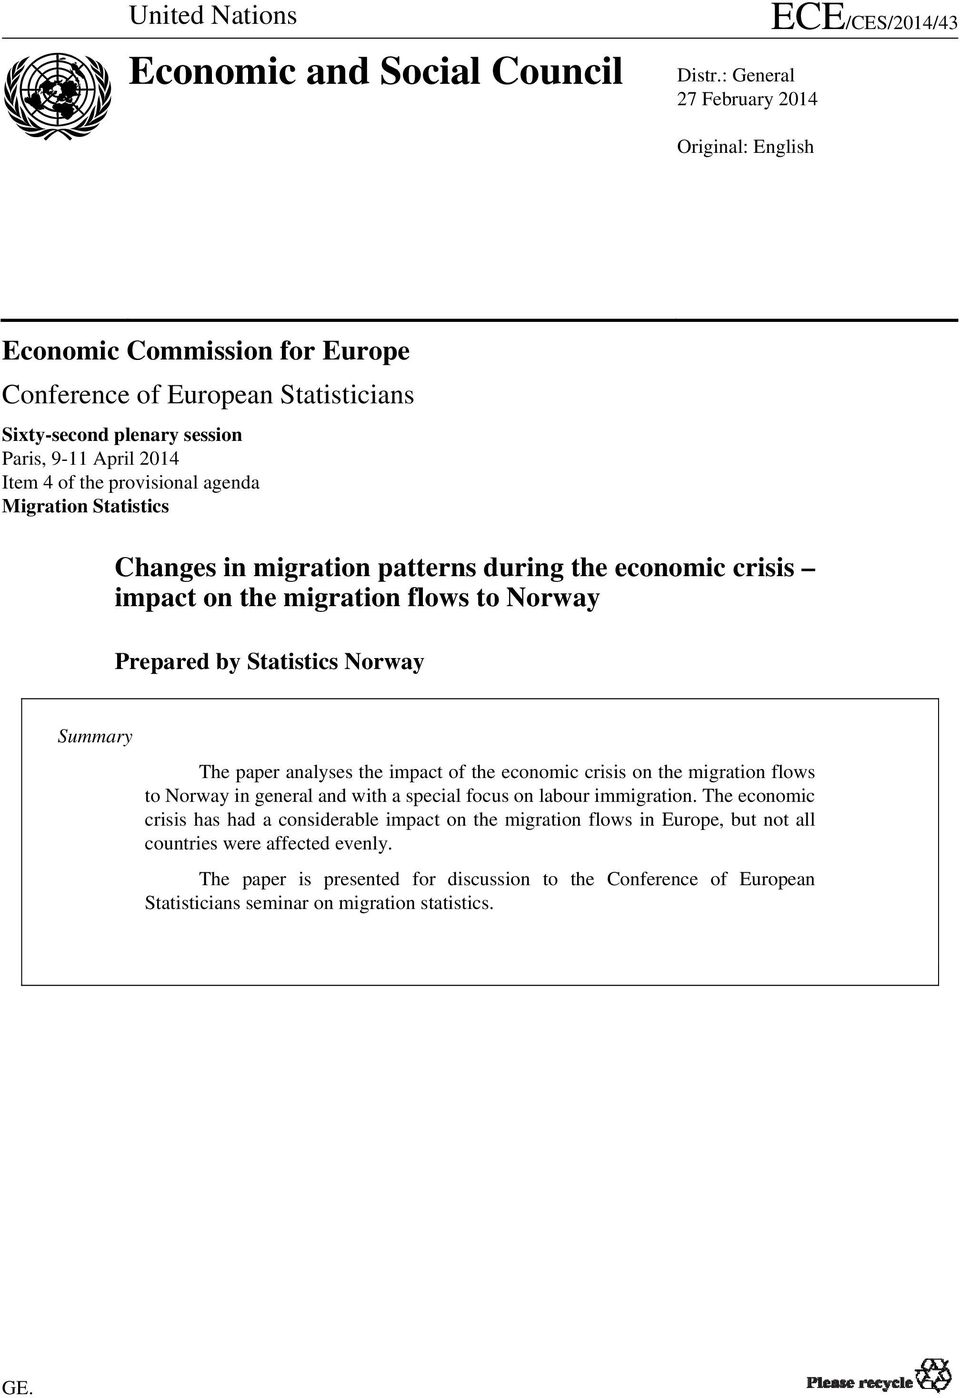 provisional agenda Migration Statistics Changes in migration patterns during the economic crisis impact on the migration flows to Norway Prepared by Statistics Norway Summary The paper analyses the